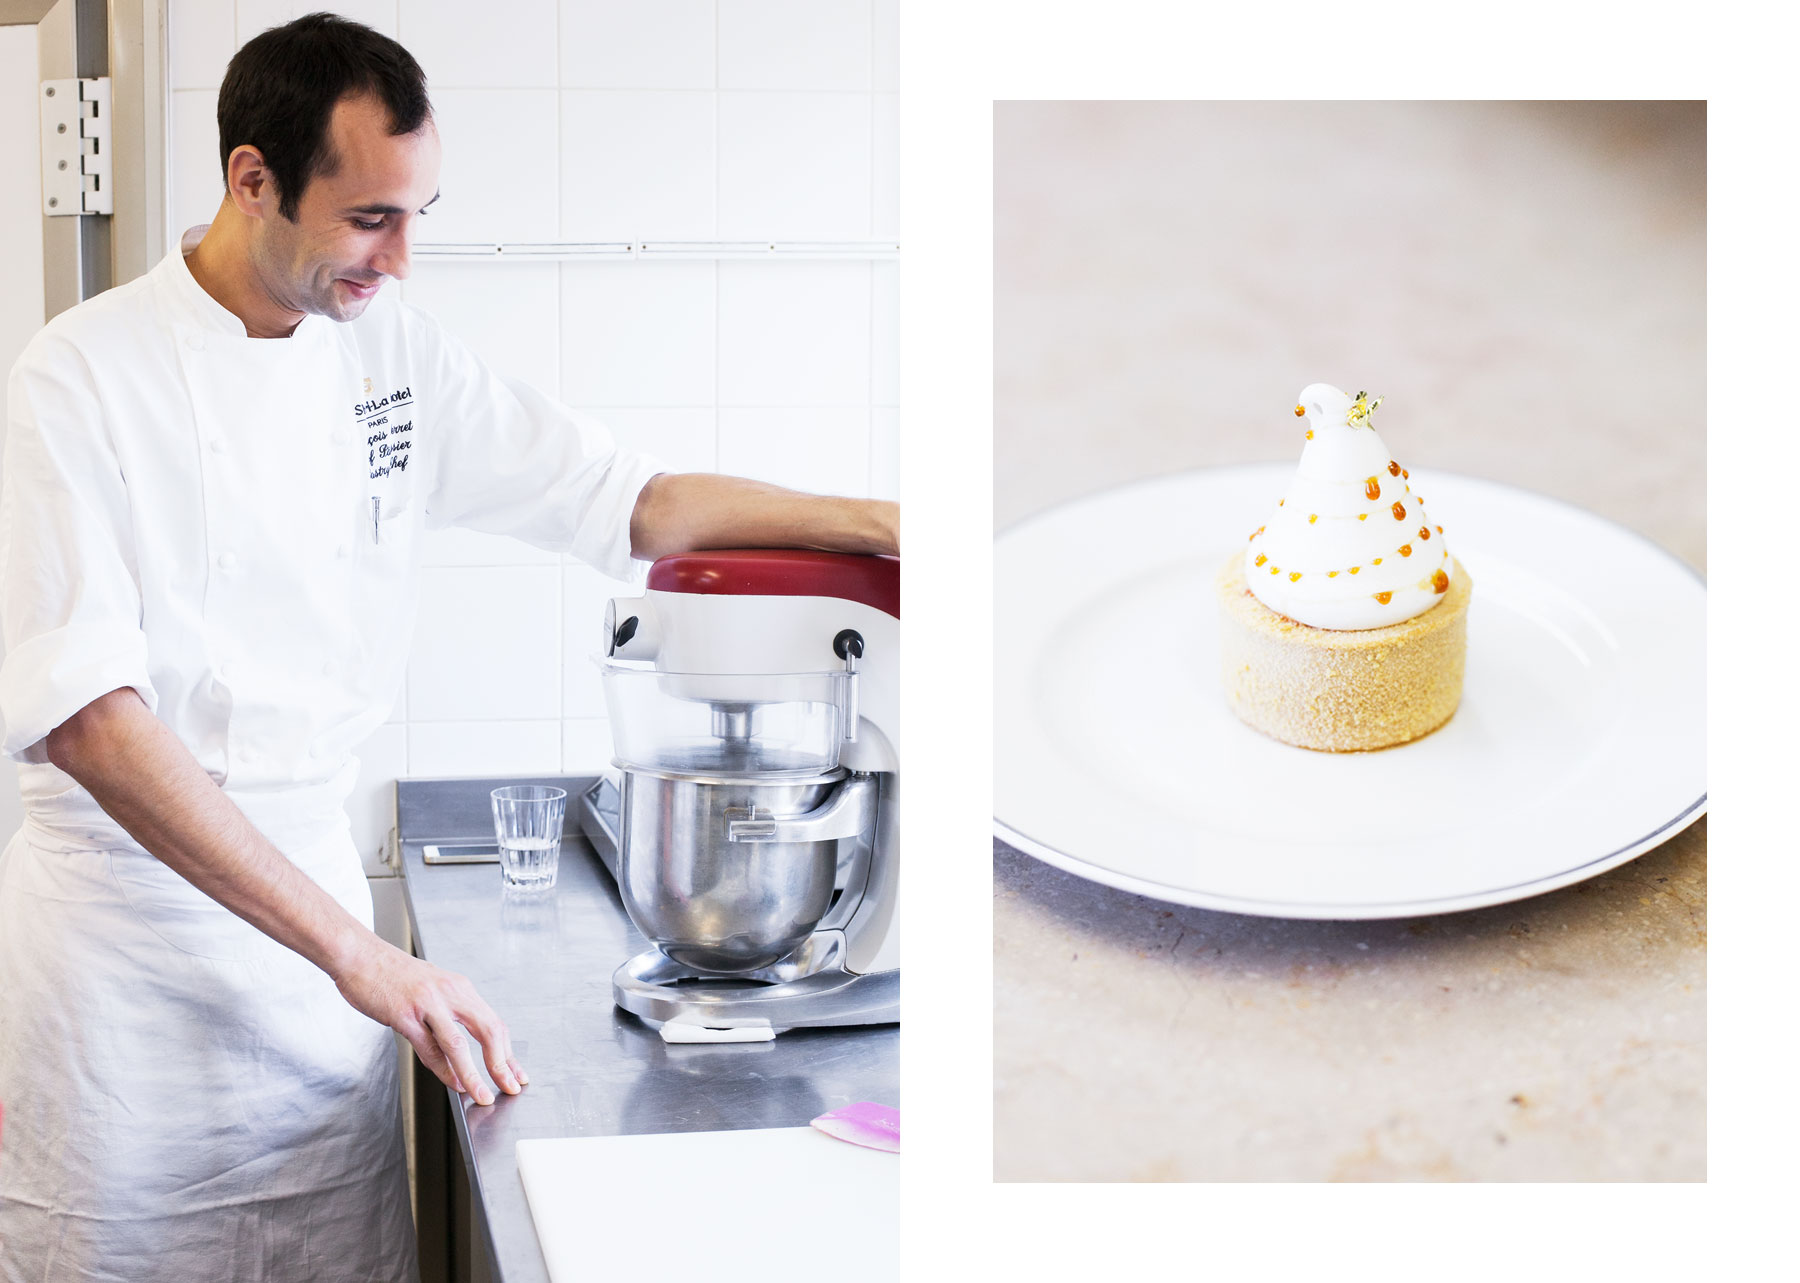 Shangri-La's pastry kitchen by Carin Olsson (Paris in Four Months)